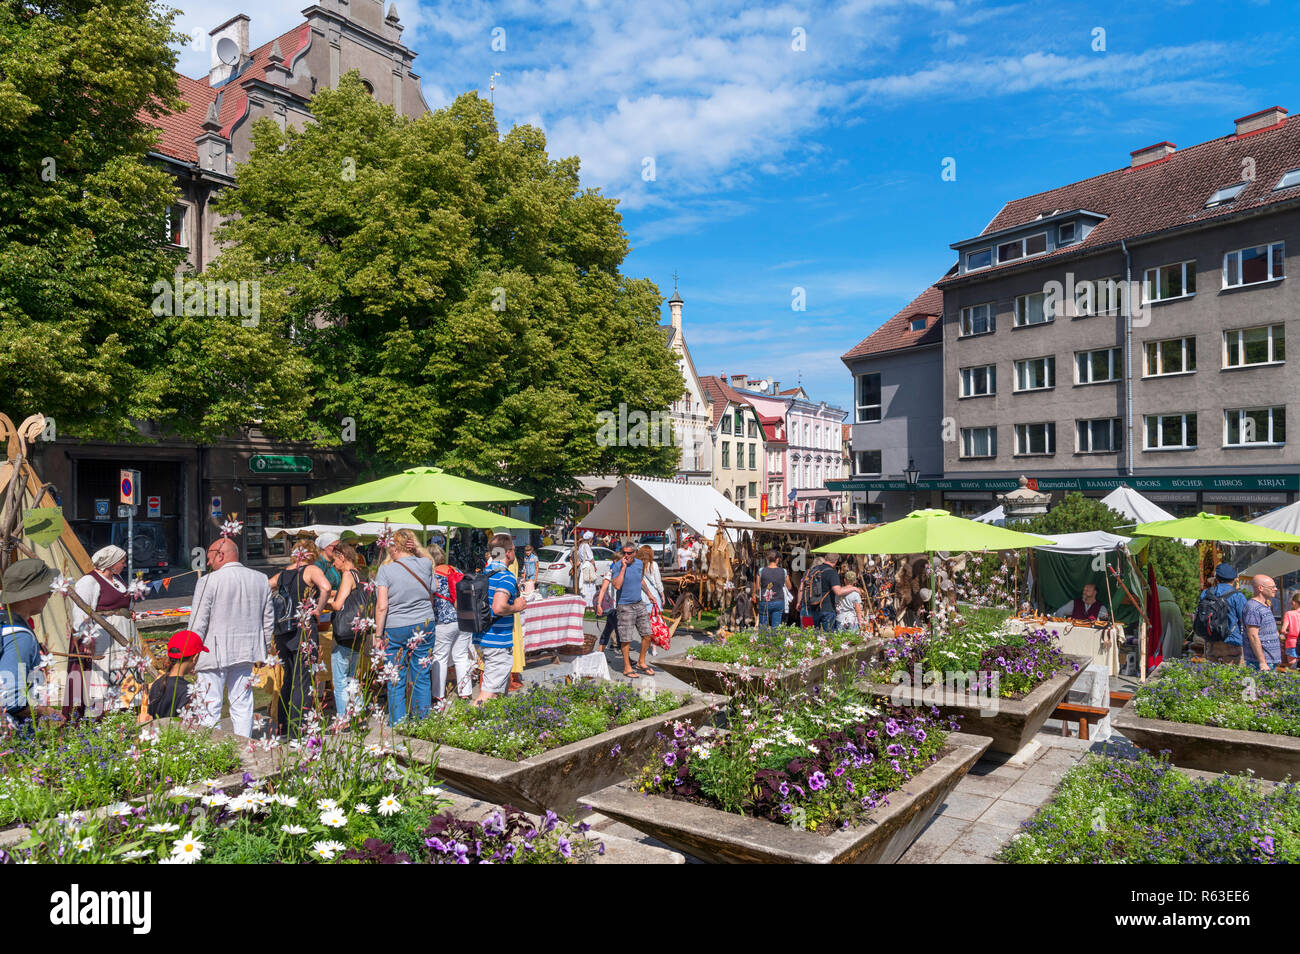 Market stalls on Niguliste at the July 2018 Medieval Days Festival in the historic Old Town, Tallinn, Estonia Stock Photo